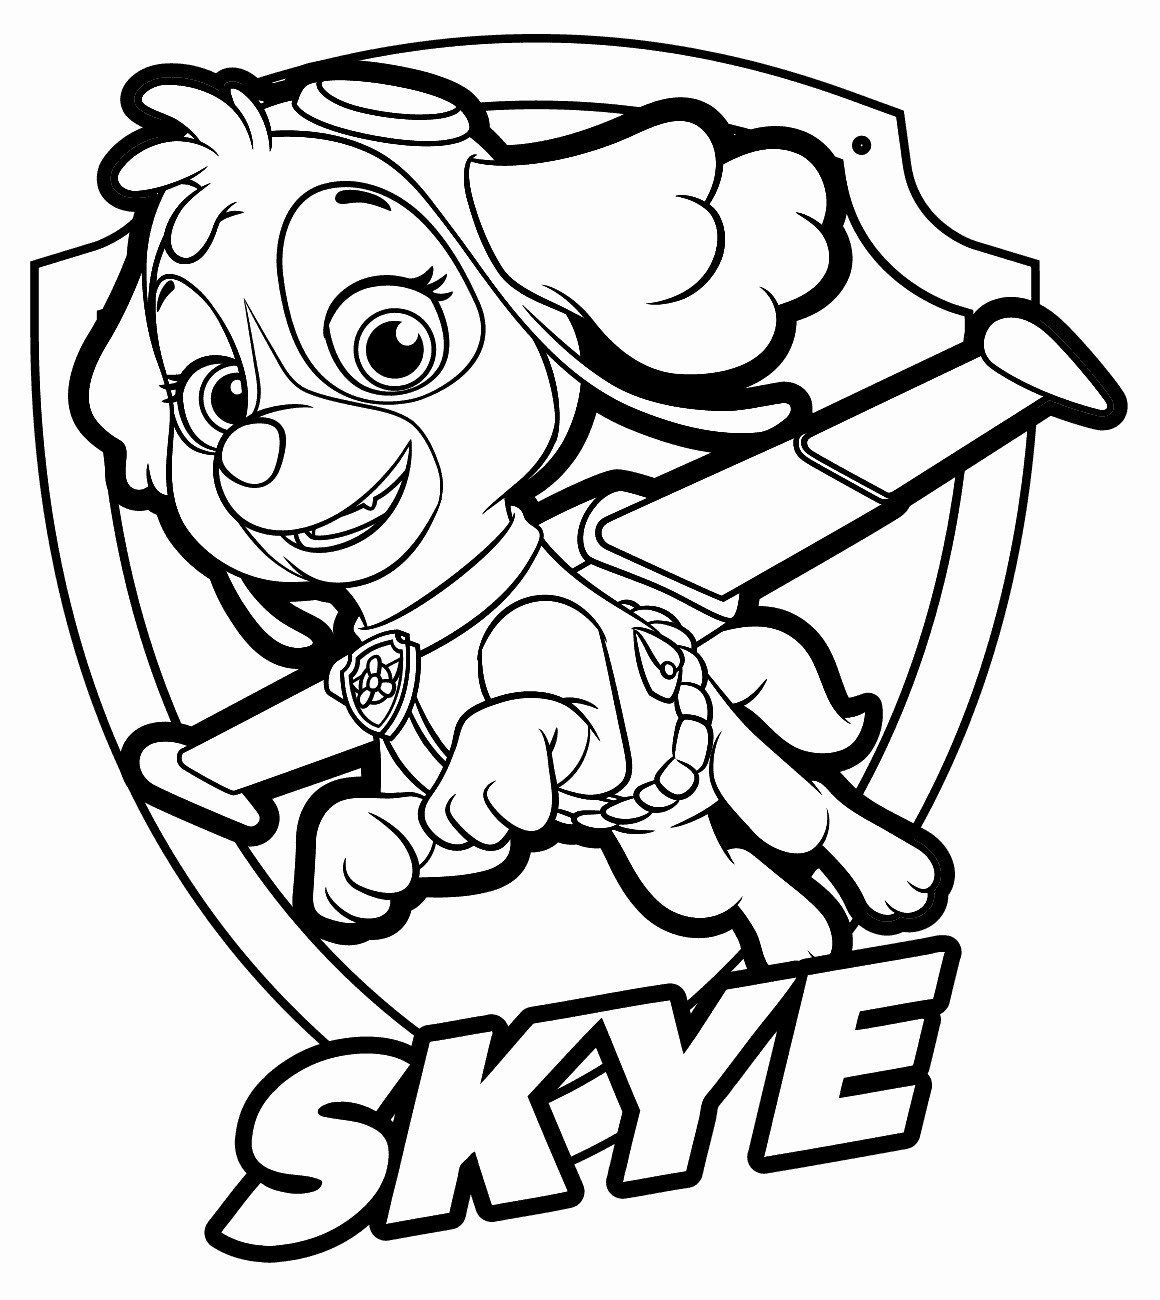 Quatang Gallery- Paw Patrol Coloring Pages Paw Patrol Coloring Pages Sky At Getcolorings Free Printable Albanysinsanity Com Paw Patrol Coloring Pages Paw Patrol Coloring Skye Paw Patrol